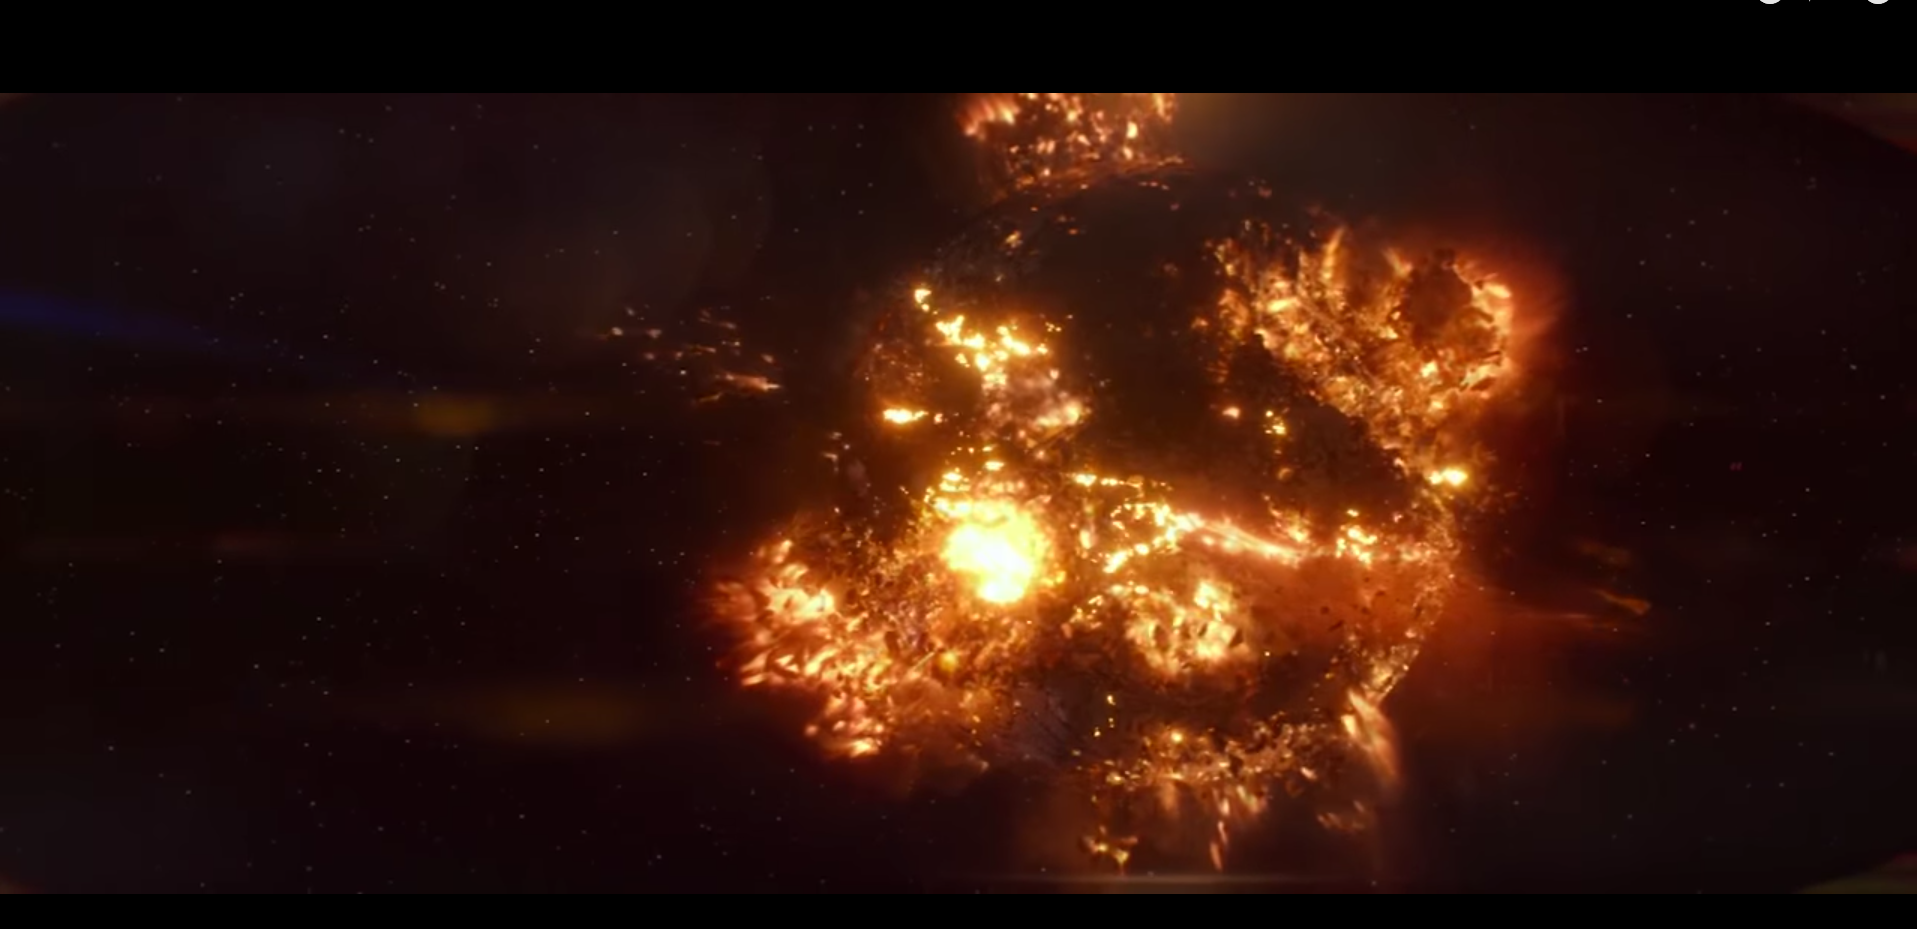 The Force Awakens Starkiller base destroeyed